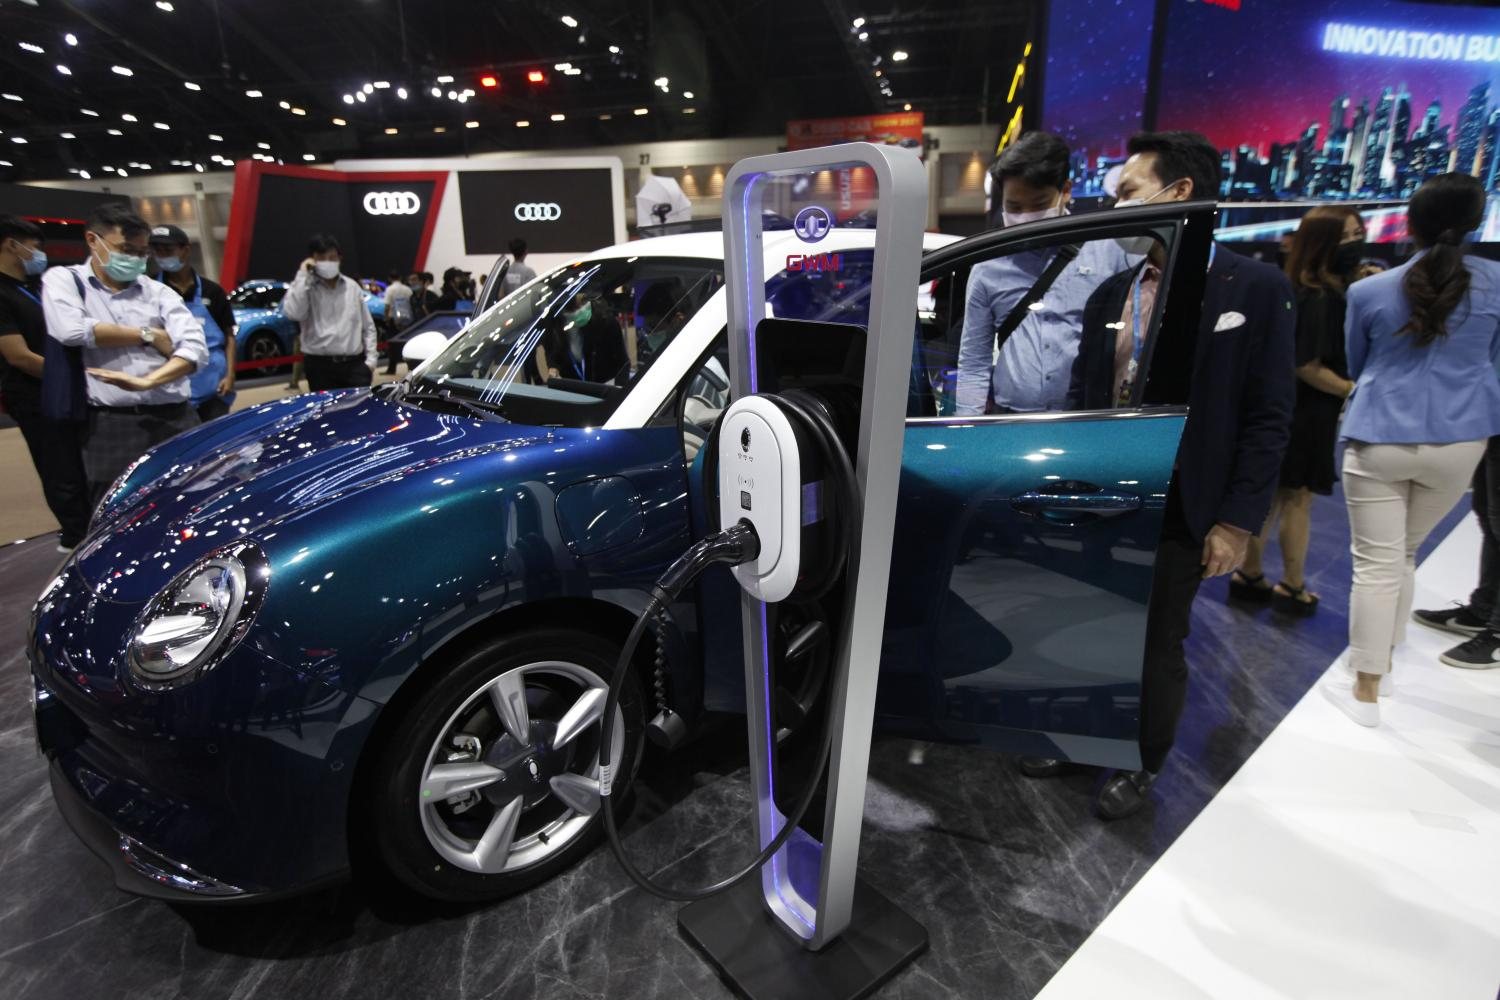 Visitors browse electric vehicles displayed at the 42nd Bangkok International Motor Show, which takes place at Impact Muang Thong Thani until April 4. (Photo by Varuth Hirunyatheb)